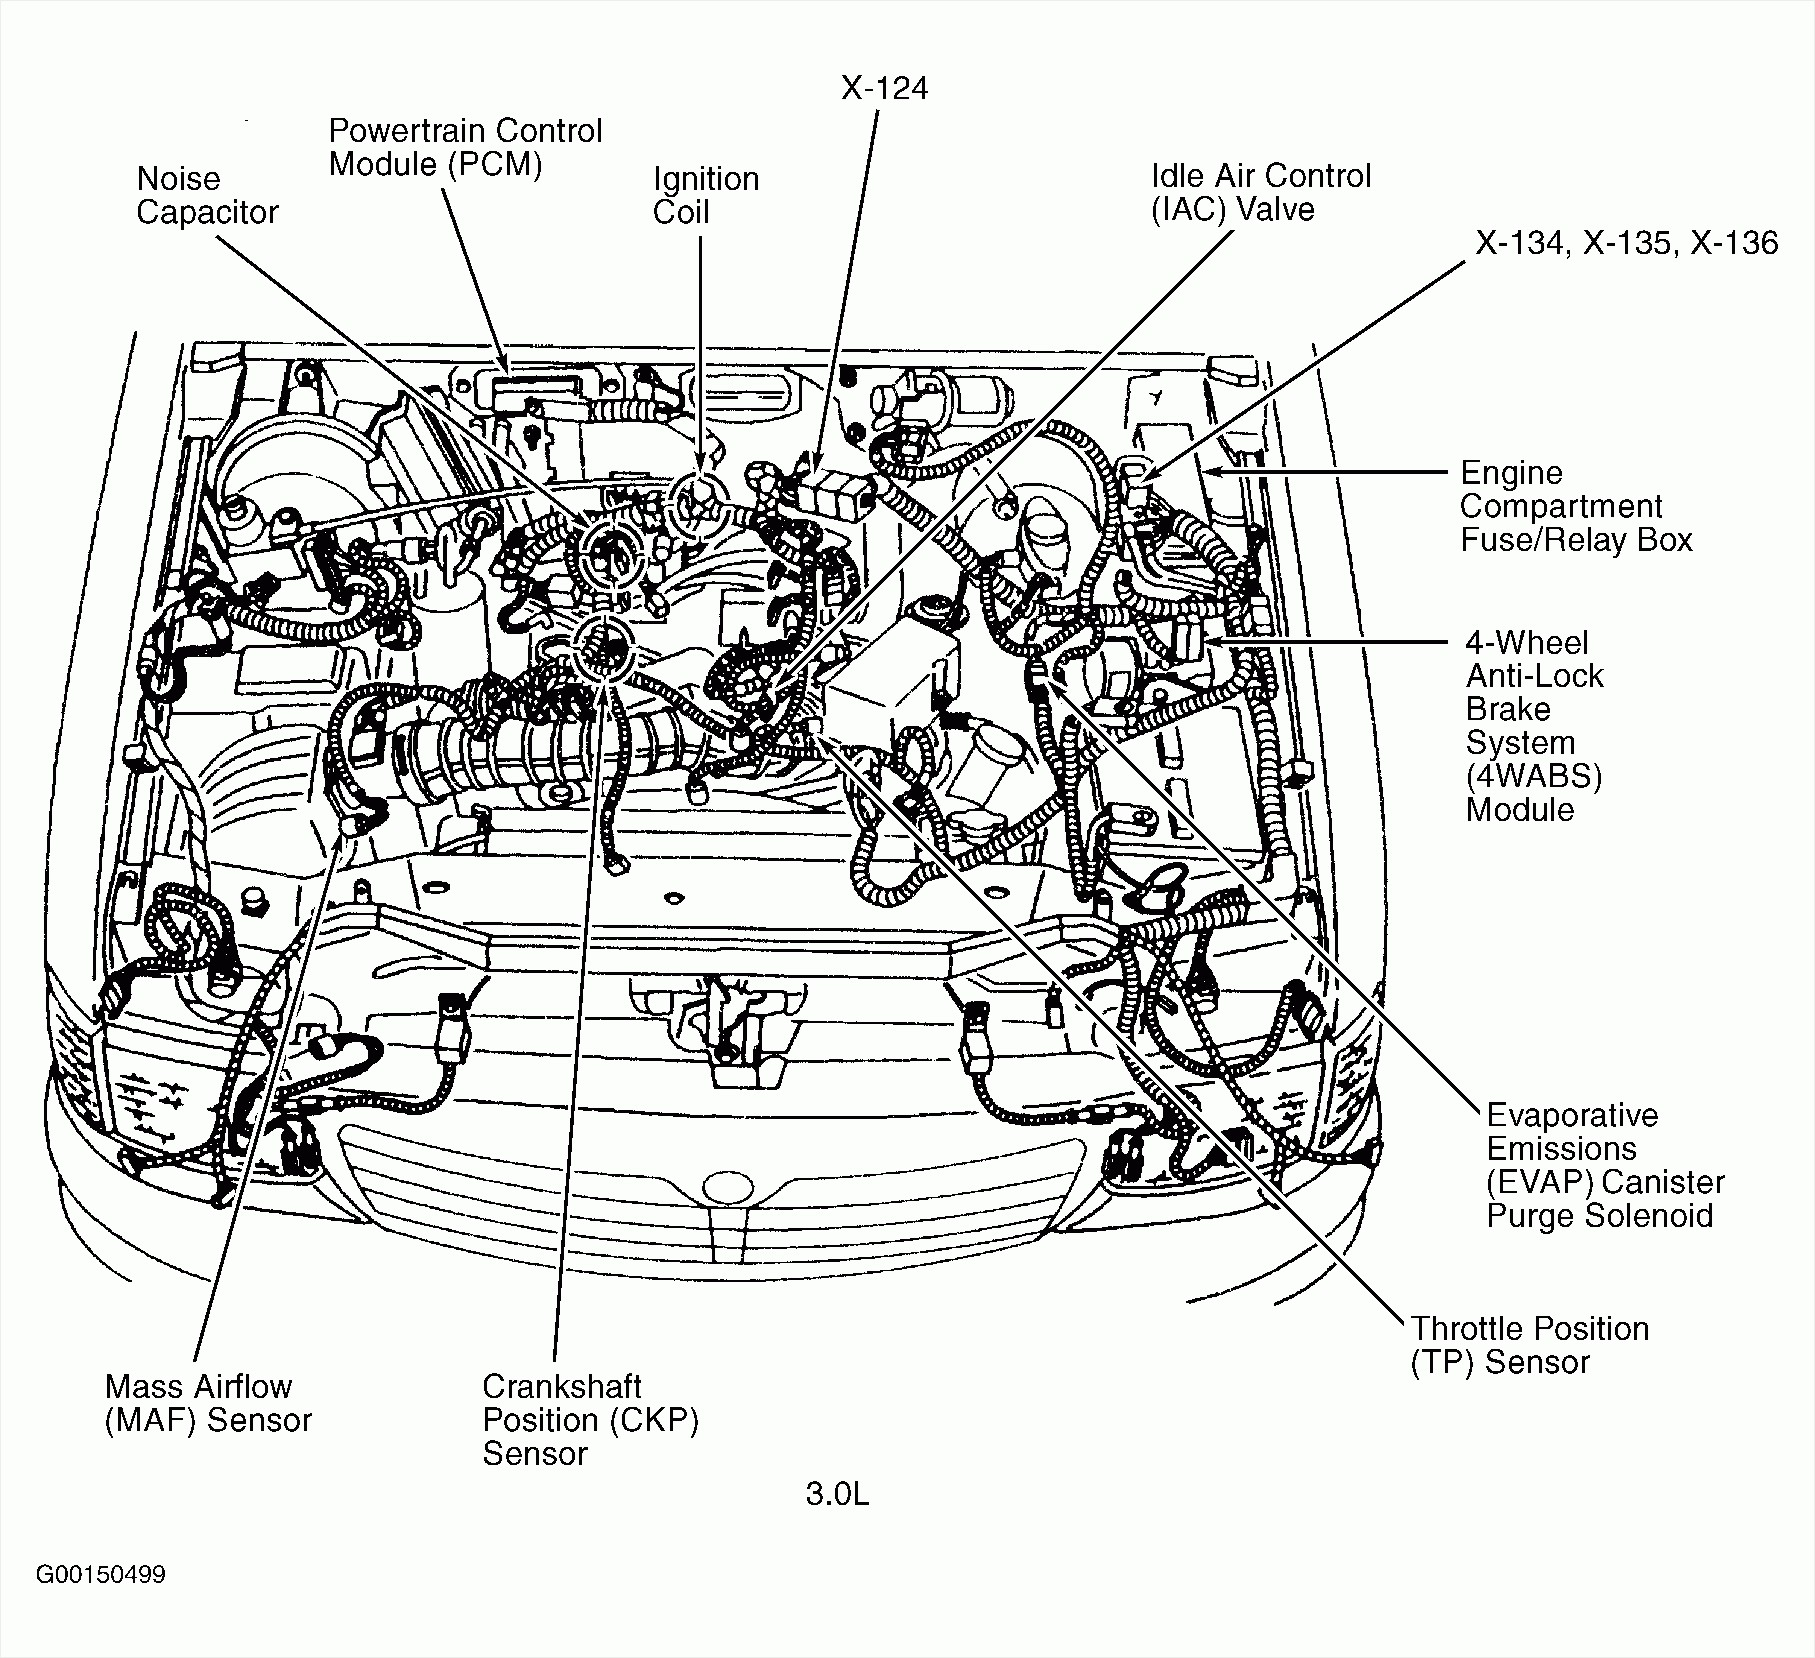 hight resolution of 2013 dodge journey engine diagram wiring diagrams 2009 dodge journey 2 4 engine diagram